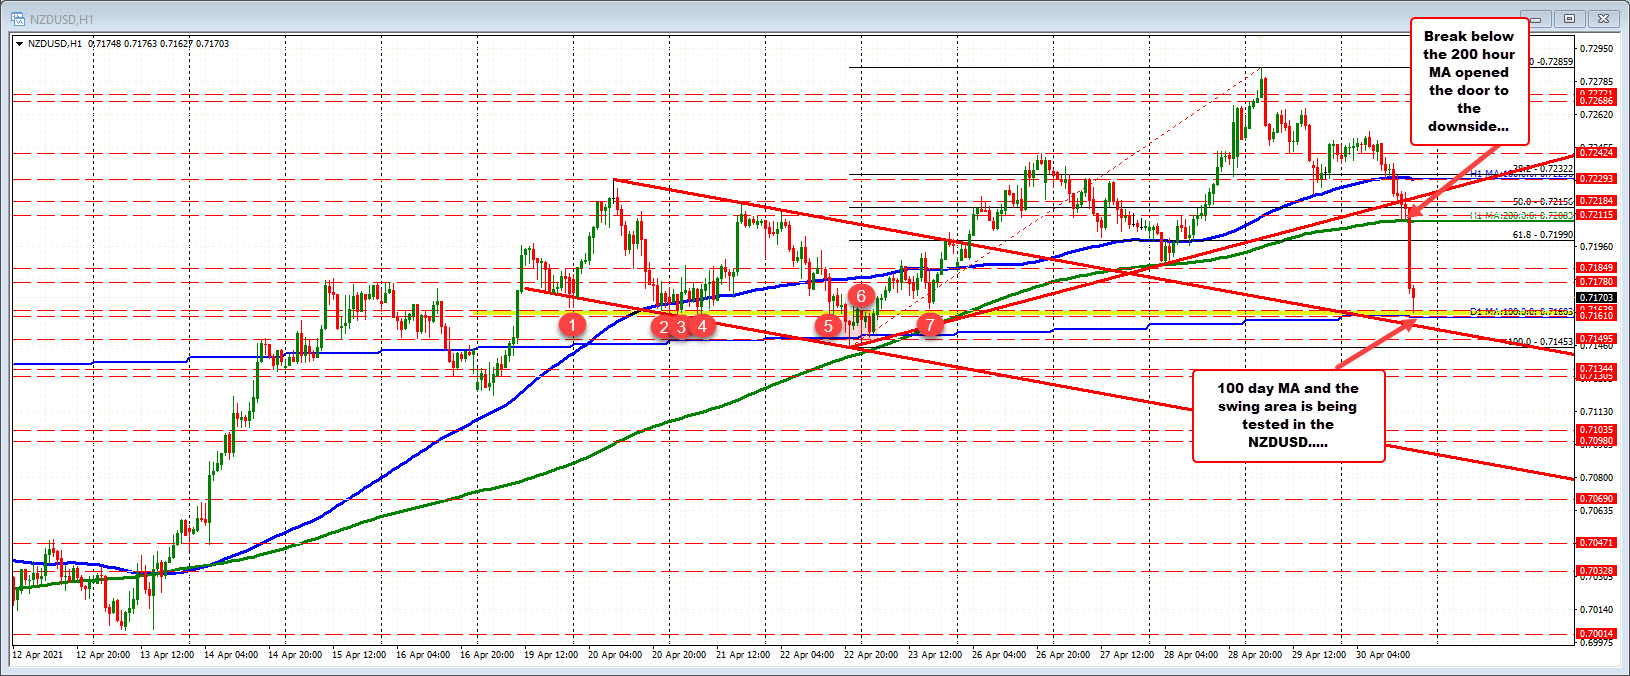 NZDUSD moves down to test 100 day MA